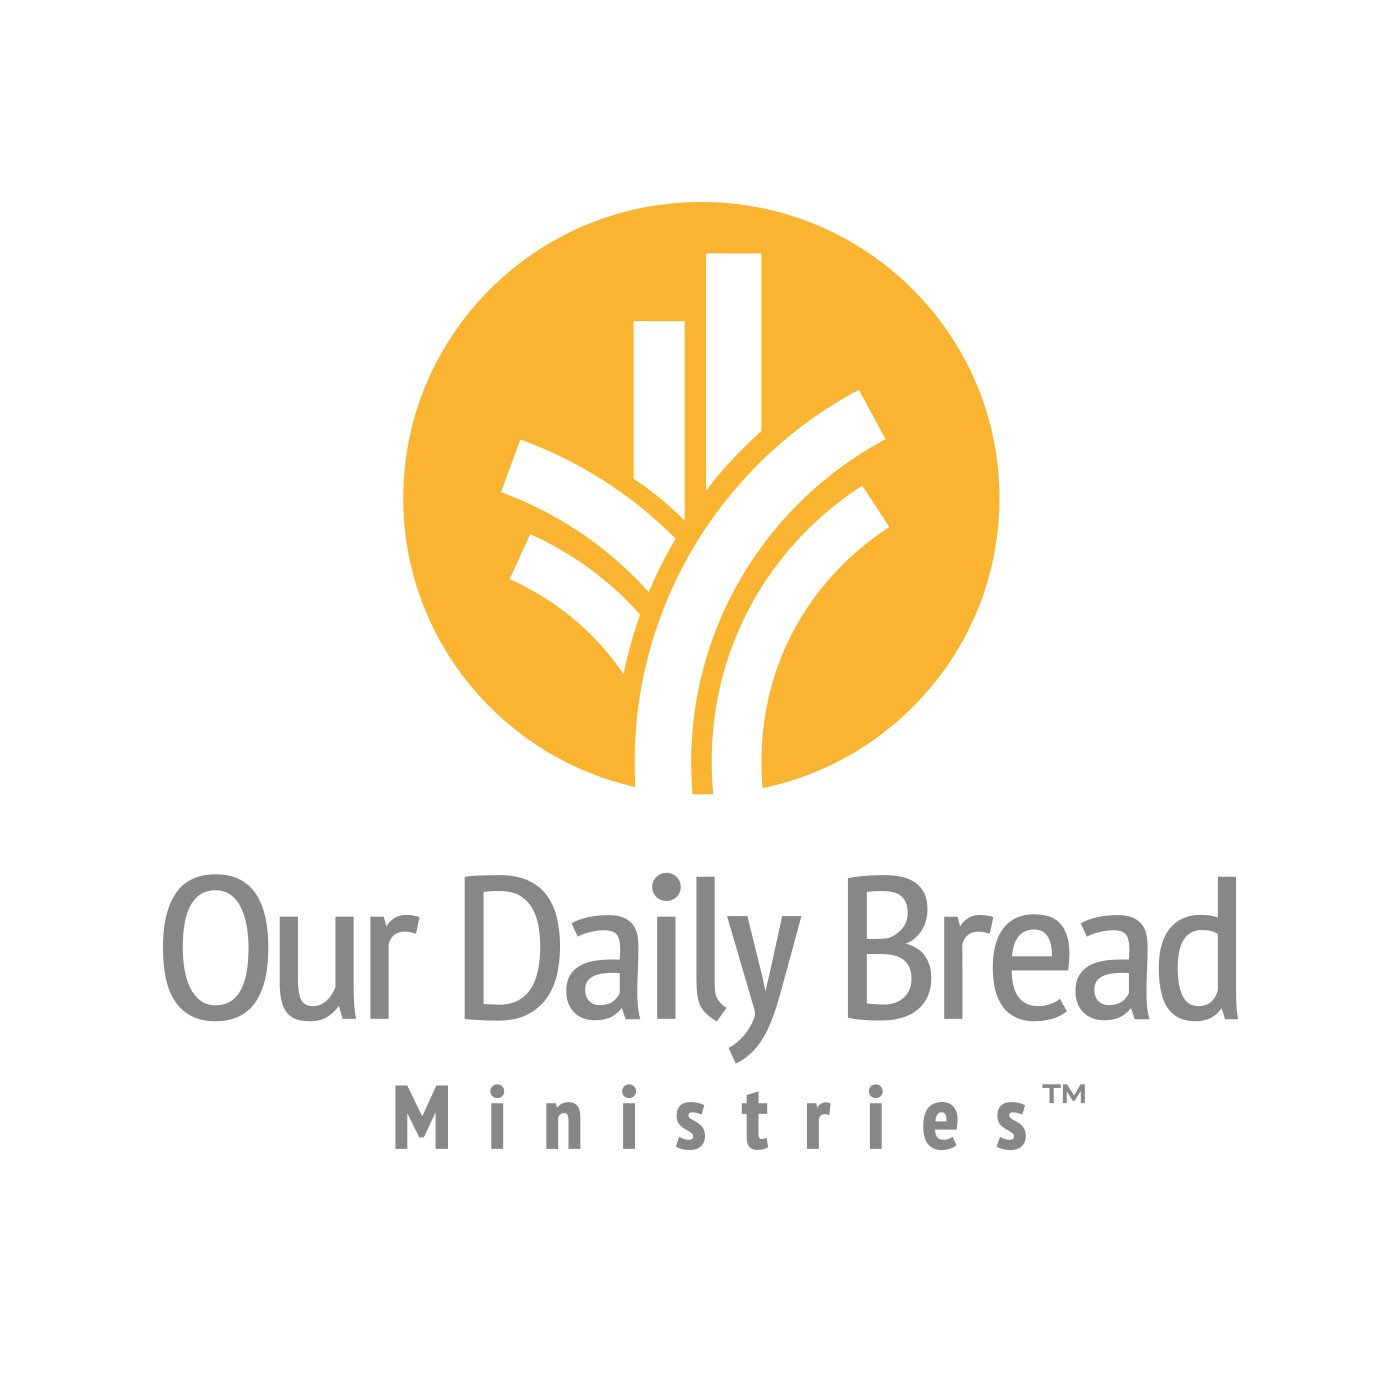 Our Daily Bread 26th November 2020, Our Daily Bread 26th November 2020 Devotional – Giving Thanks Always, Latest Nigeria News, Daily Devotionals & Celebrity Gossips - Chidispalace